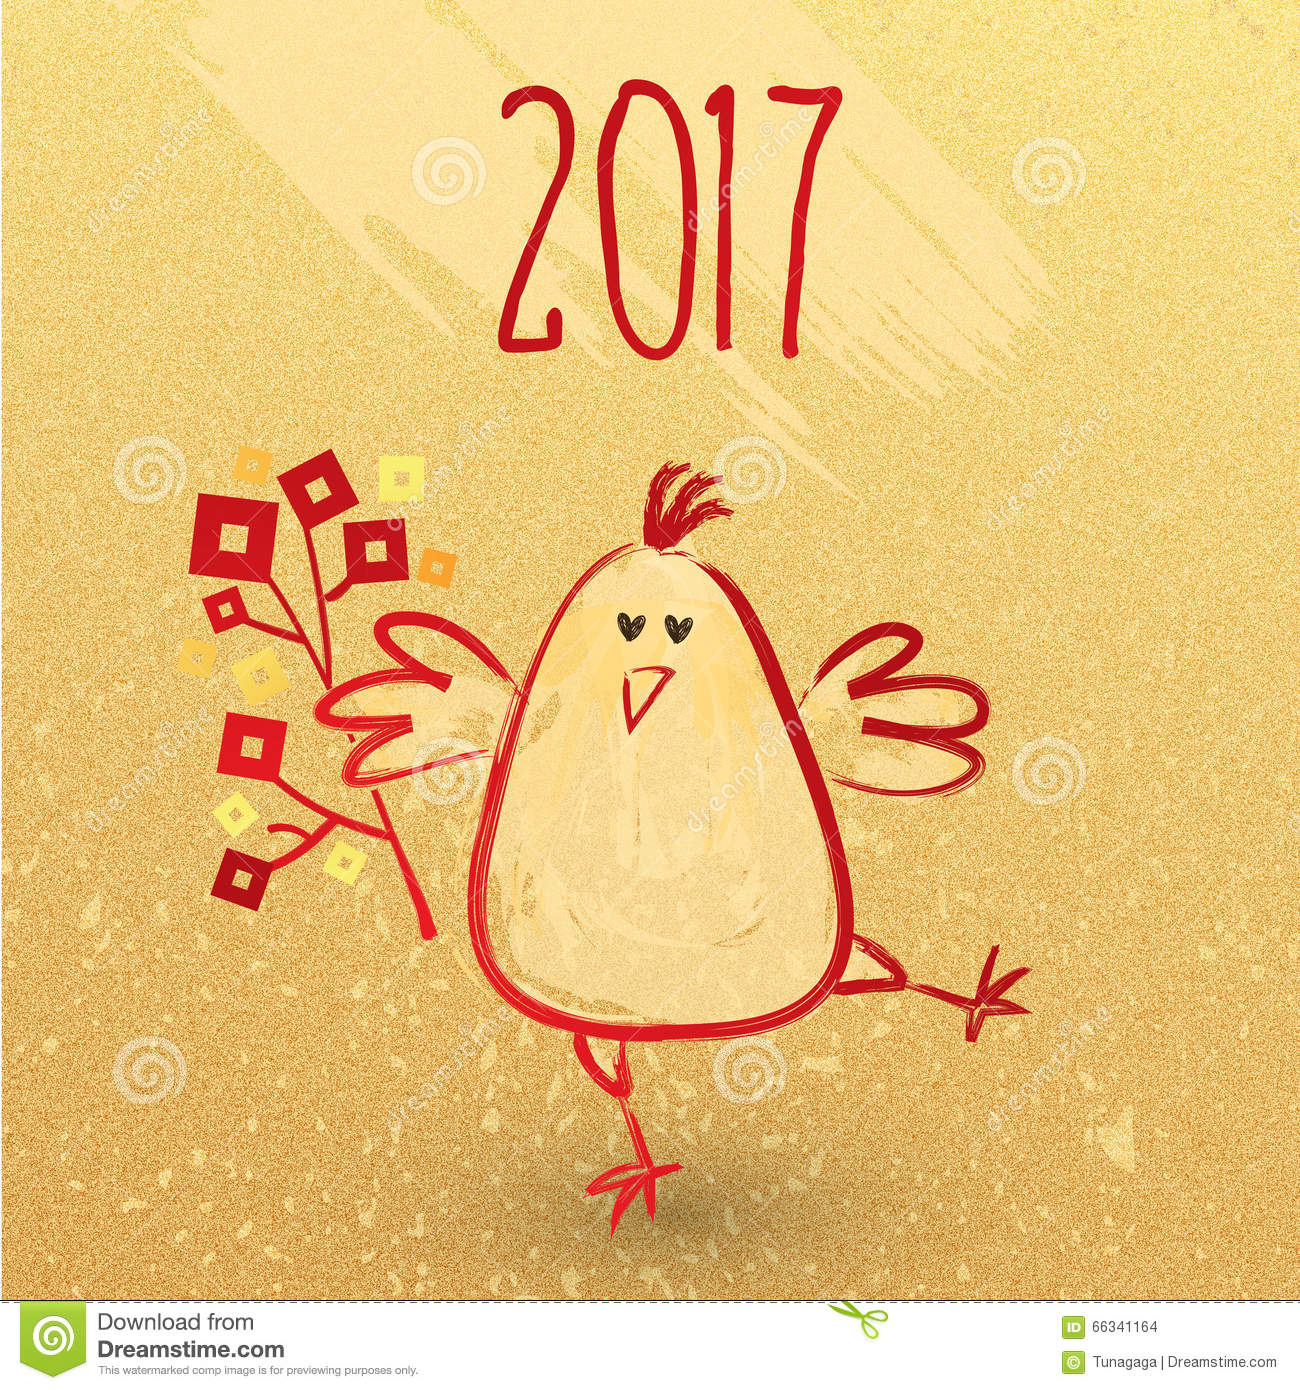 2017 rooster chinese new year greeting card design stock vector download 2017 rooster chinese new year greeting card design stock vector illustration of celebration m4hsunfo